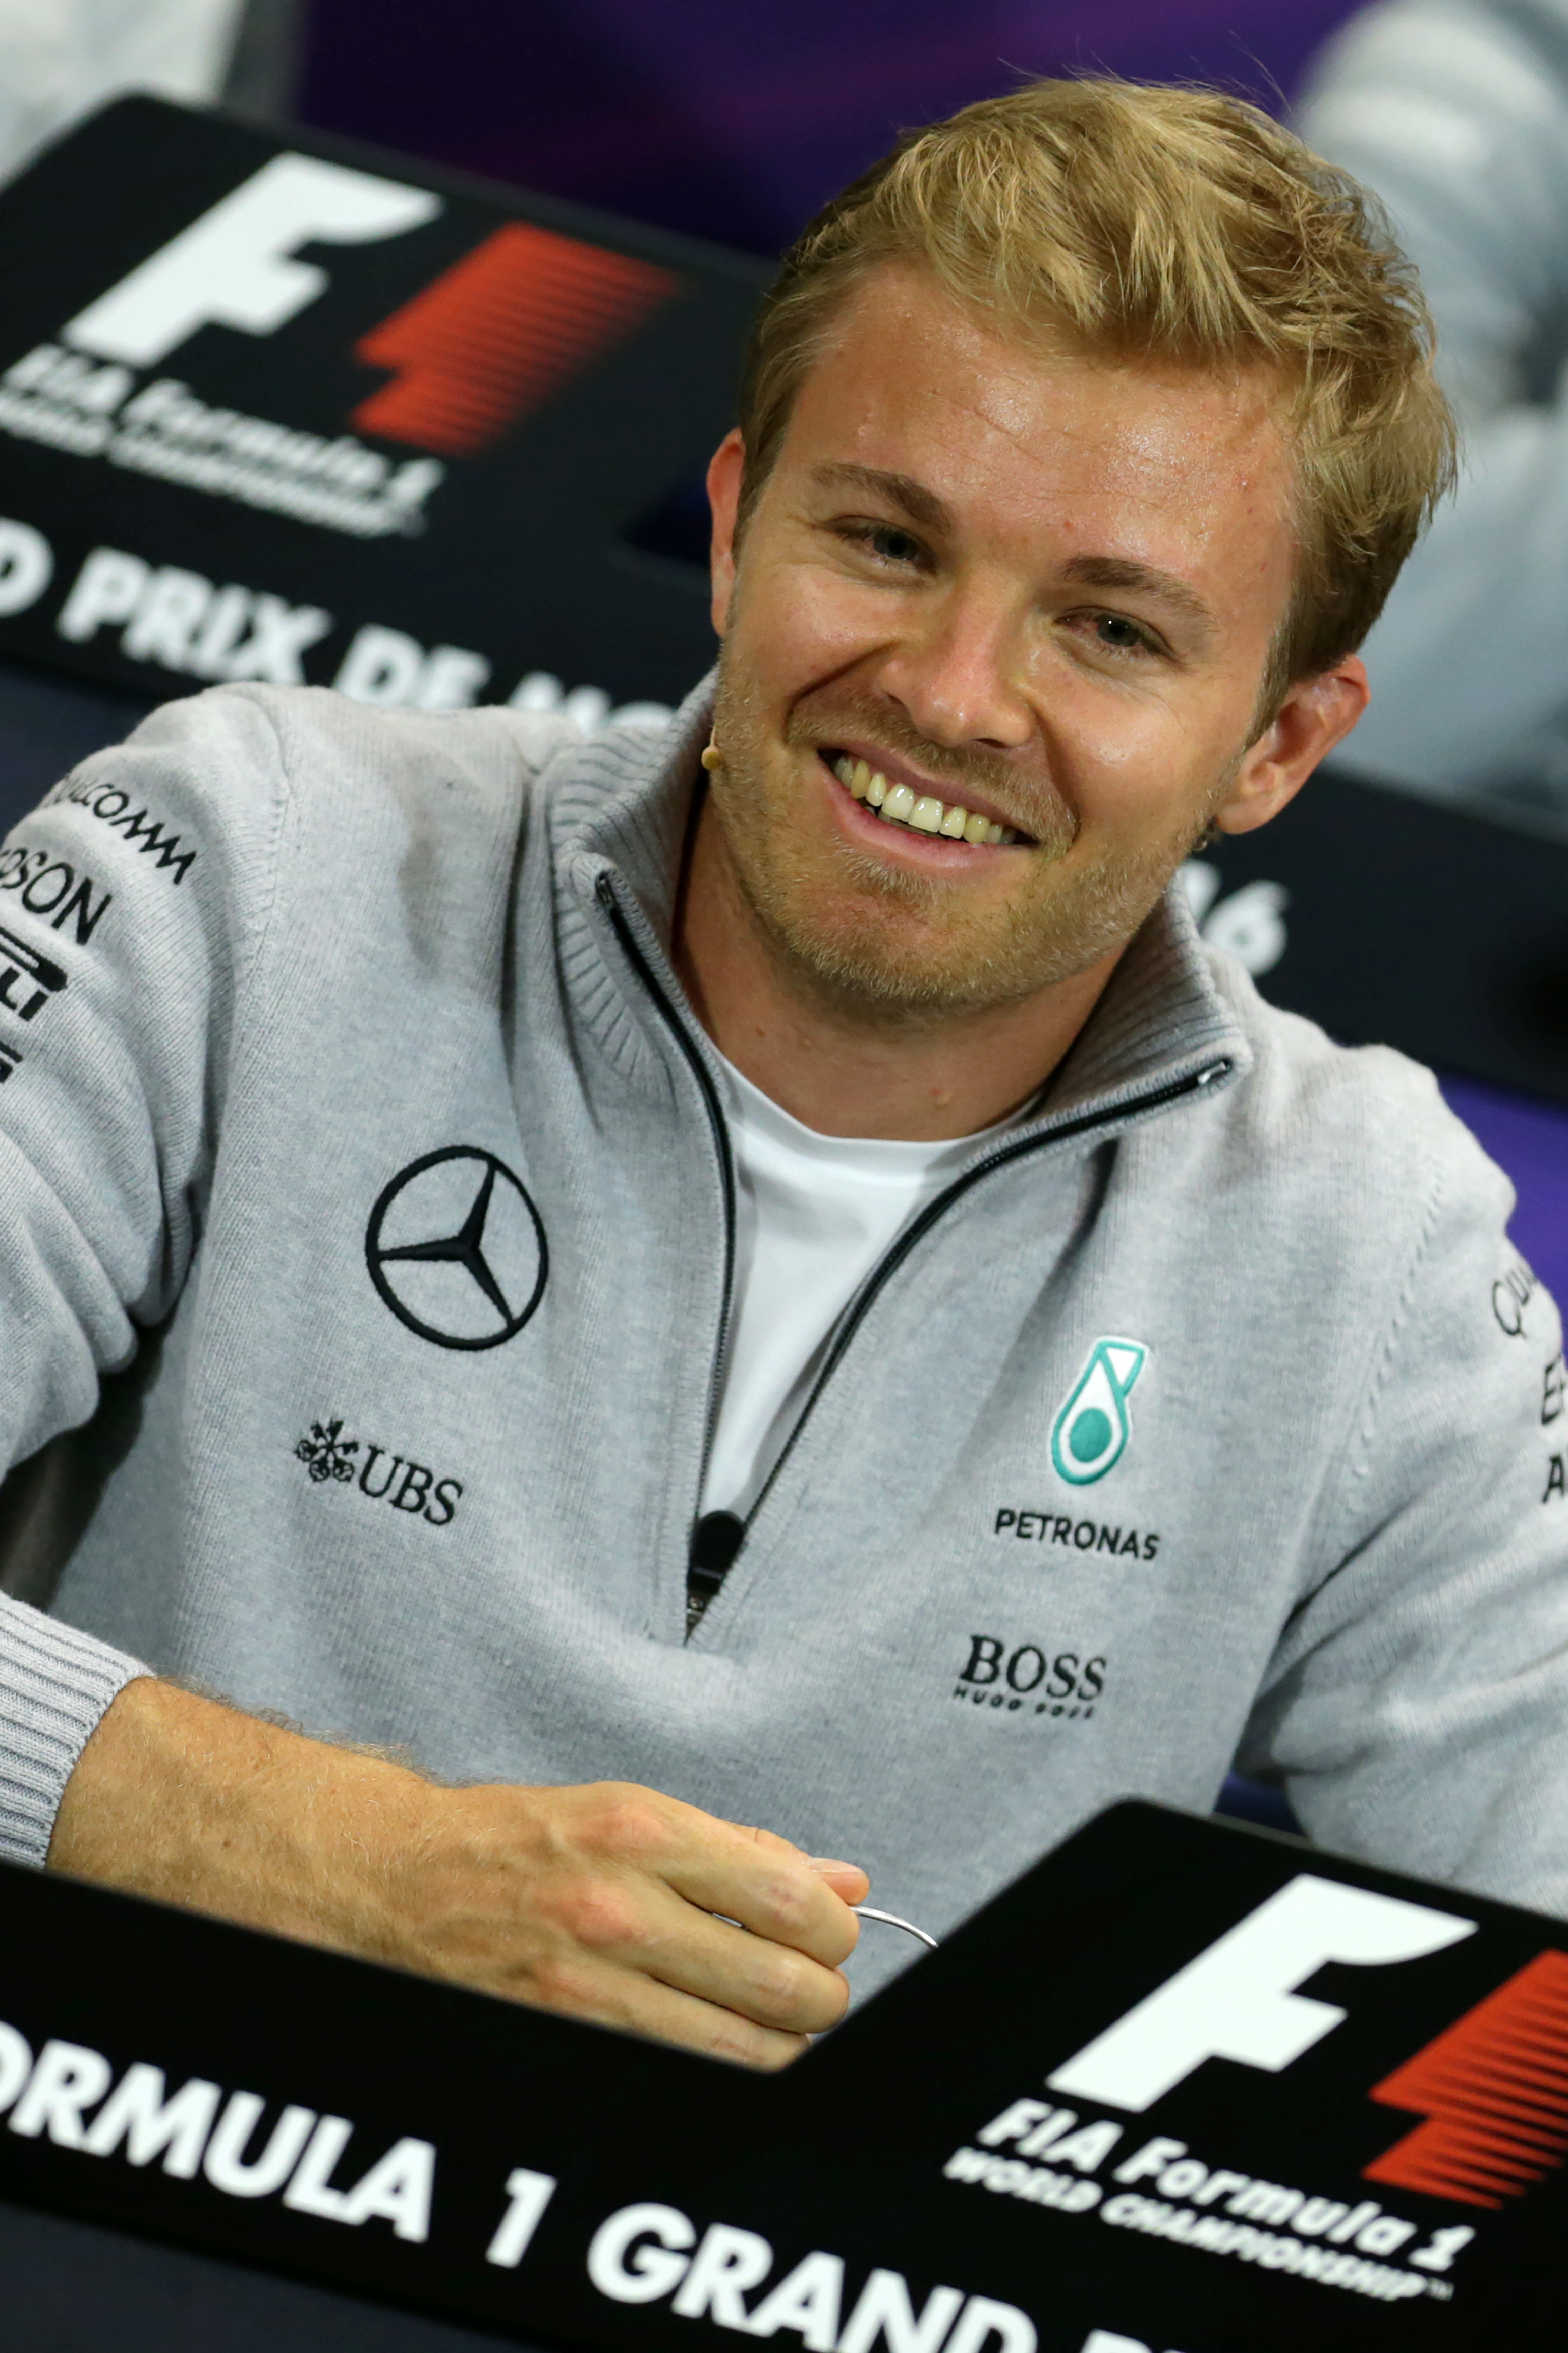 Mercedes' German driver Nico Rosberg smiles during a press conference at the Monaco street circuit in Monte-Carlo on May 25, 2016, four days ahead of the Monaco Formula One Grand Prix. / AFP PHOTO / Jean-Christophe MAGNENET